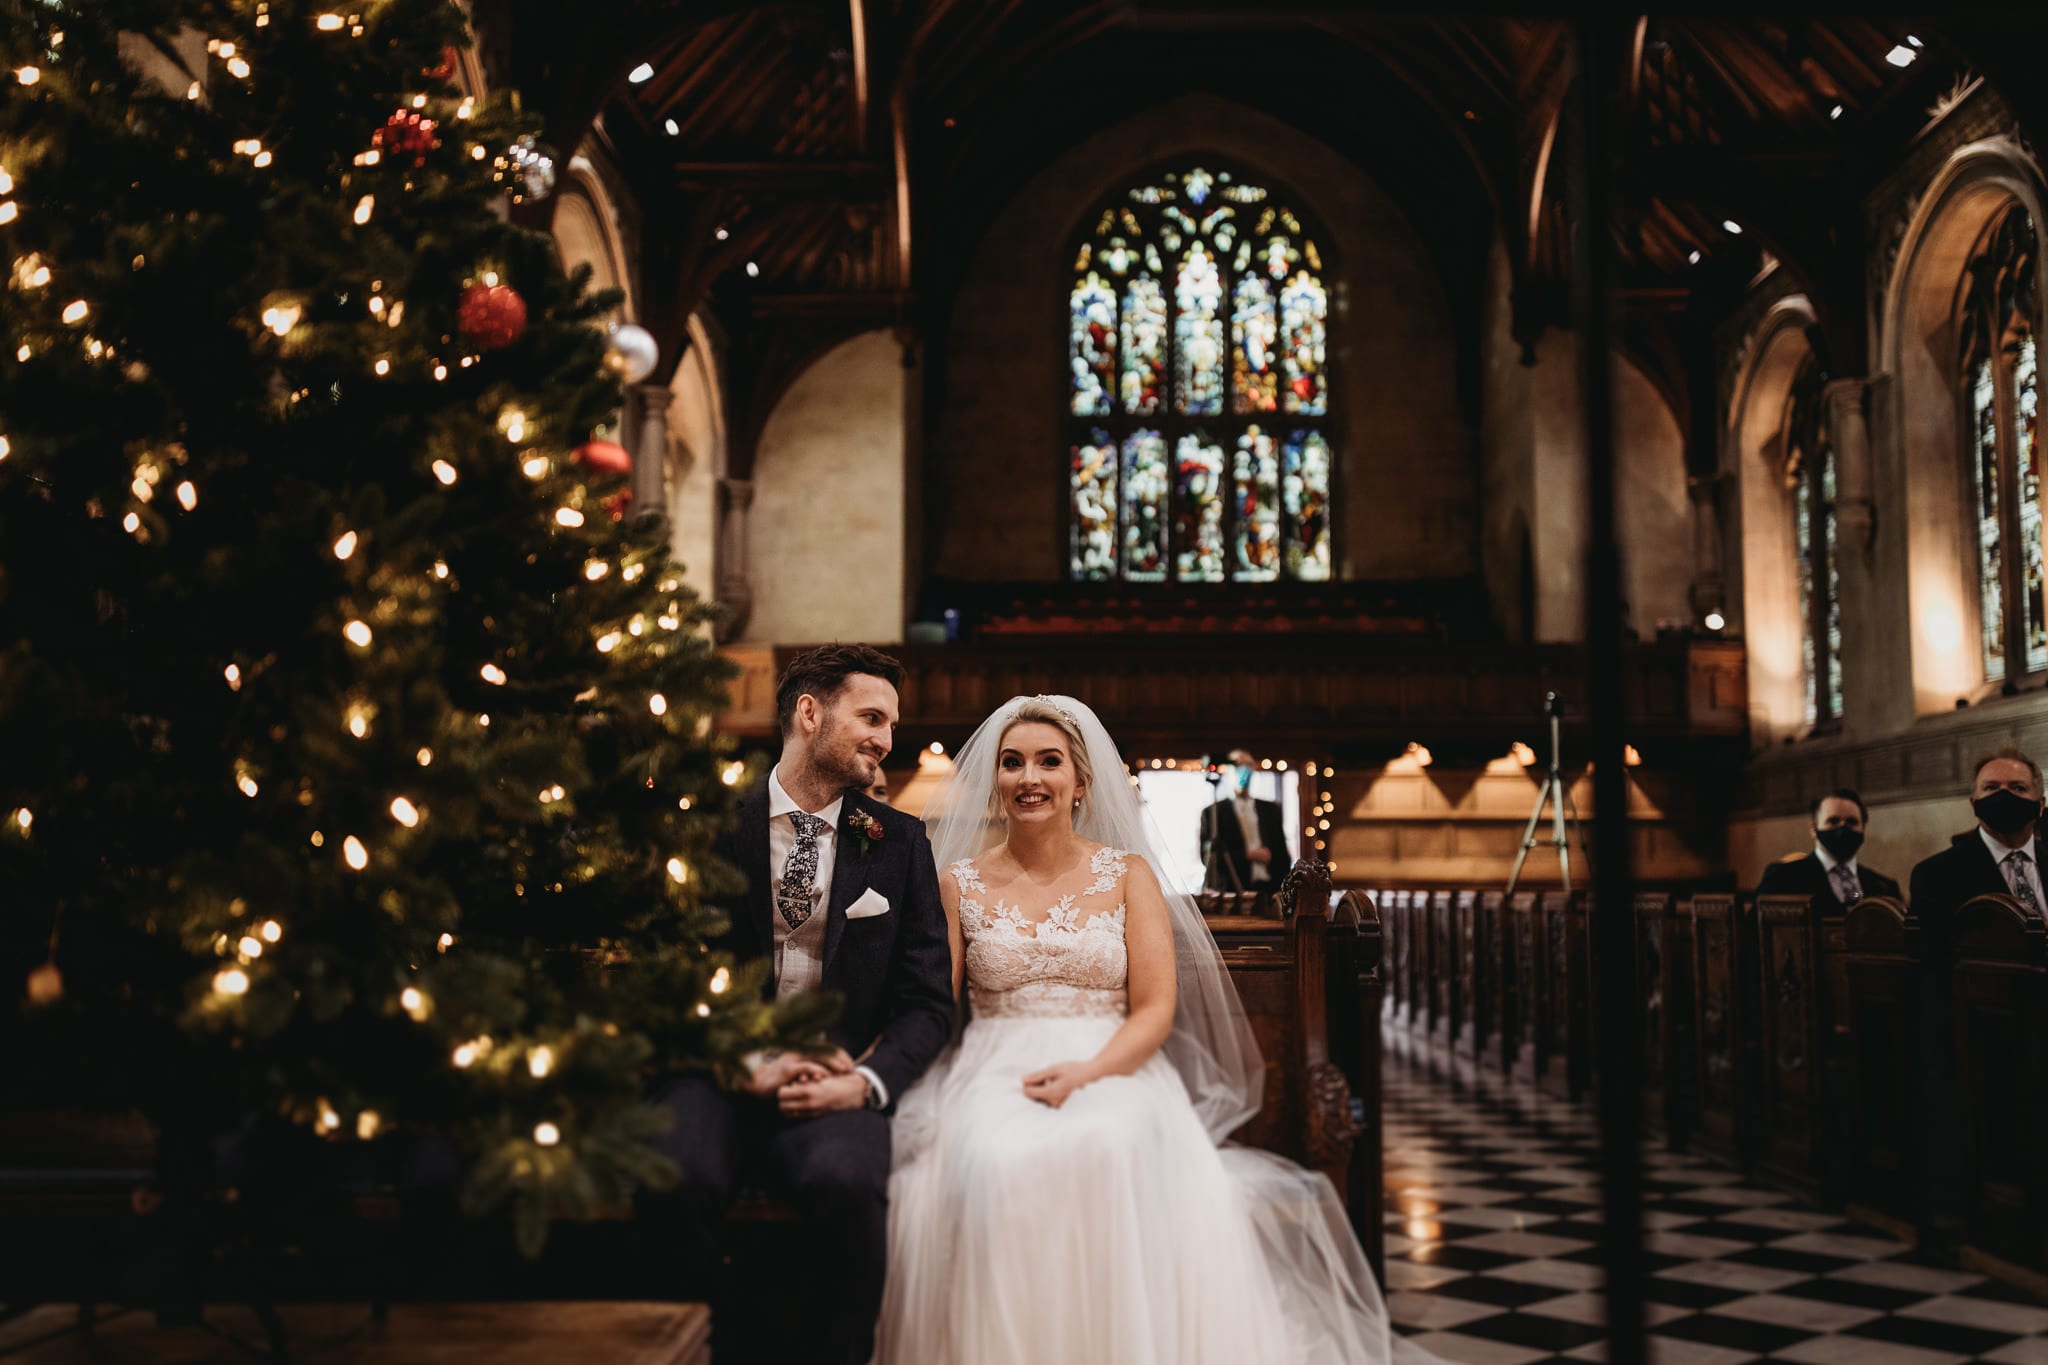 bride and groom sitting in front row in the church, Christmas tree in front